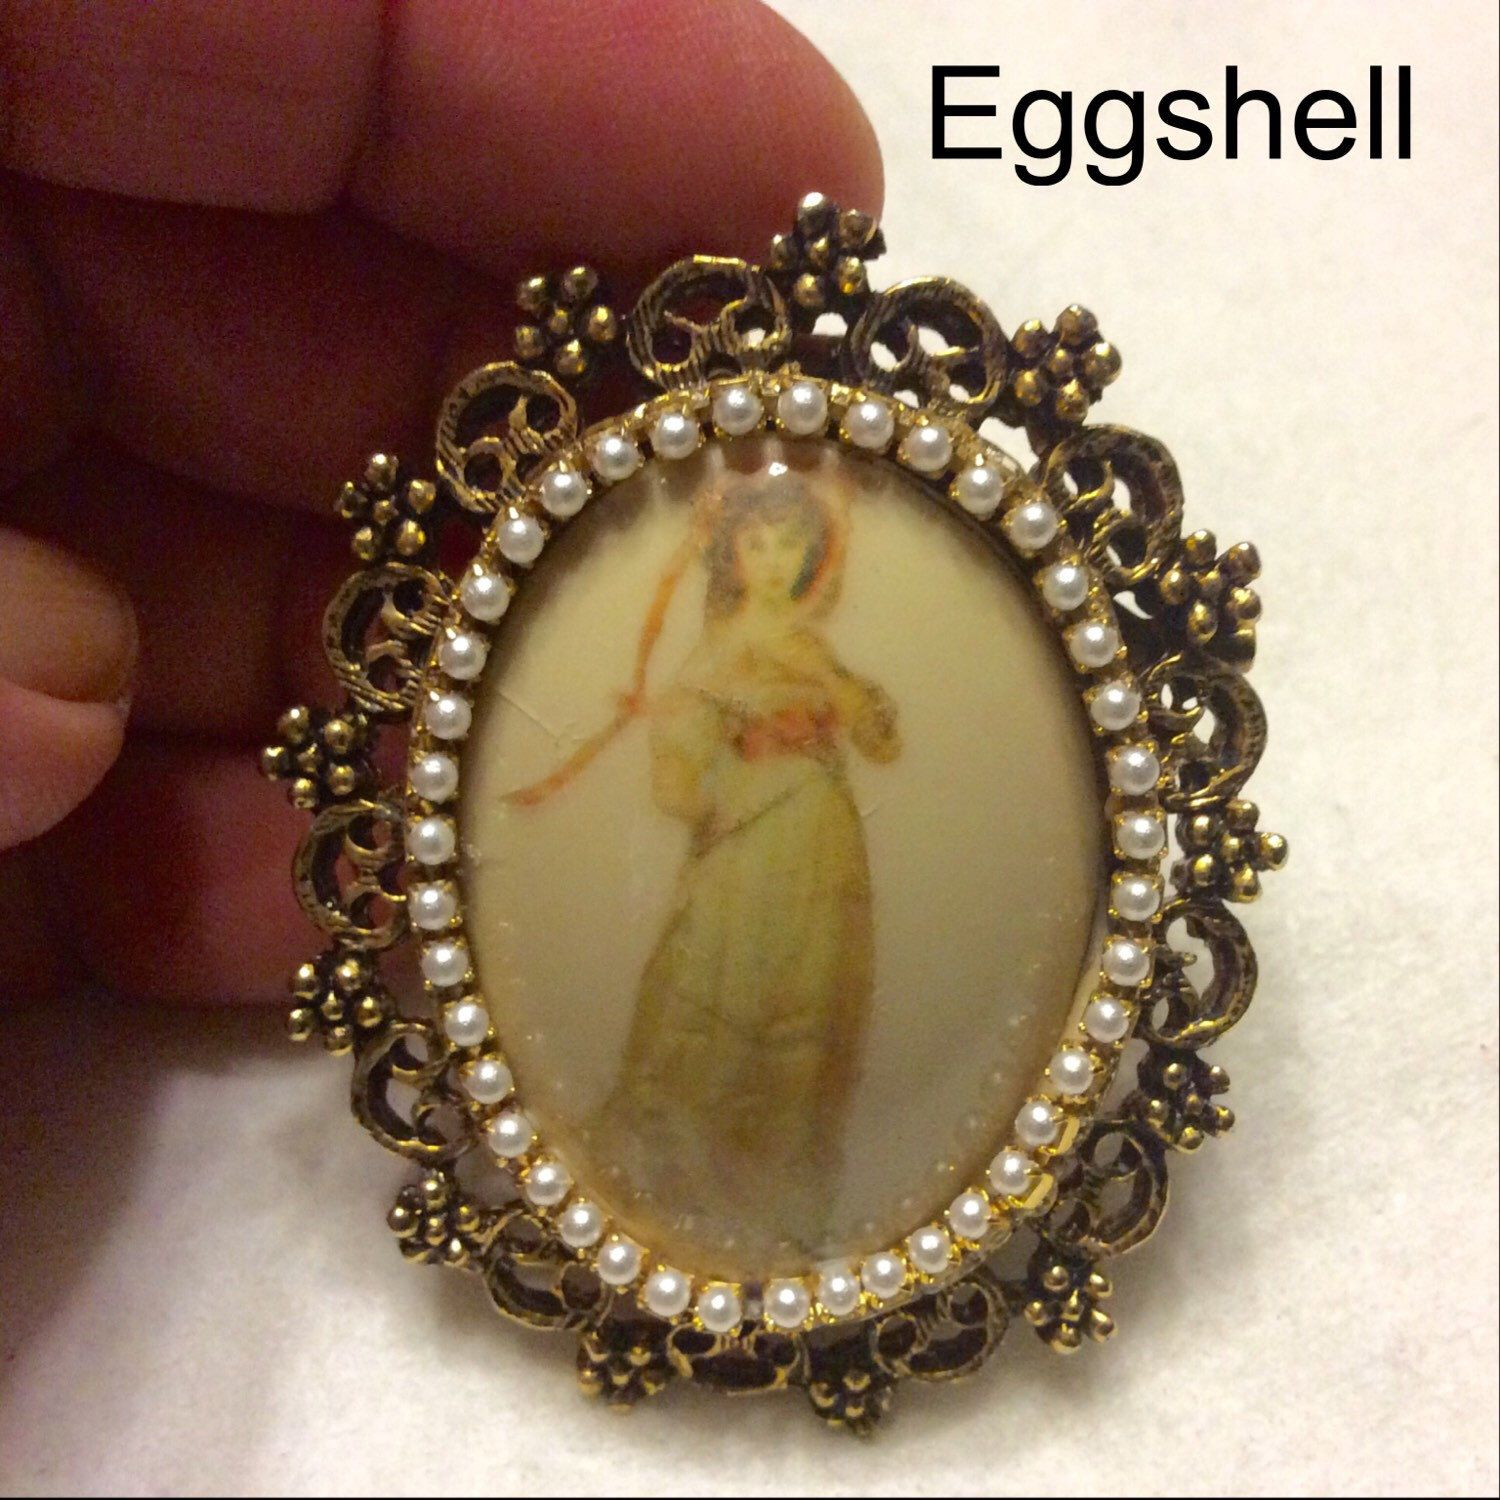 A personal favorite from my Etsy shop https://www.etsy.com/listing/270207513/vintage-1940s-eggshell-brooch-pin